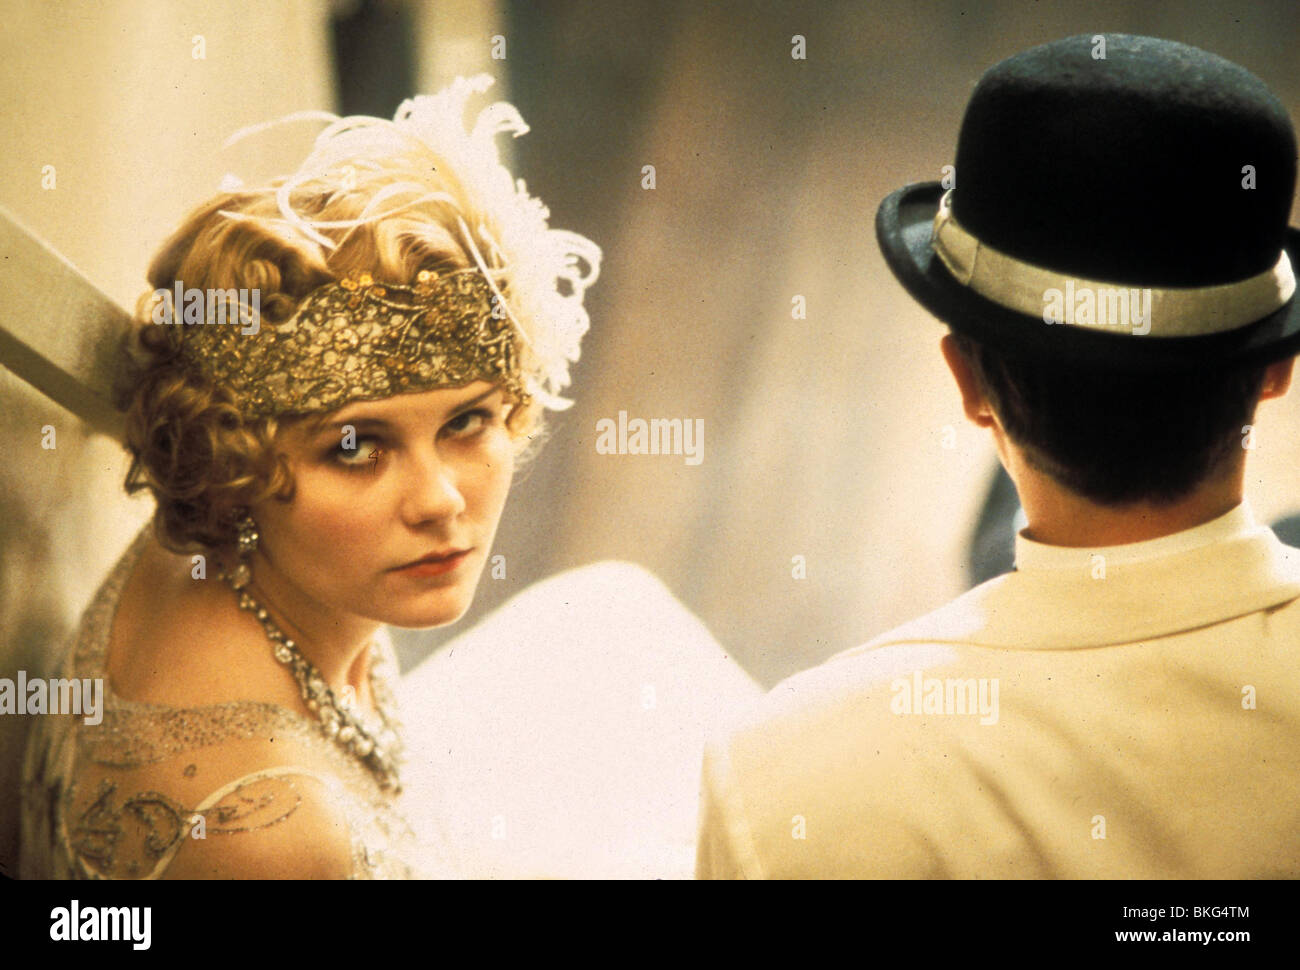 THE CAT'S MEOW (2001) KIRSTEN DUNST CMEO 001-02 Stock Photo